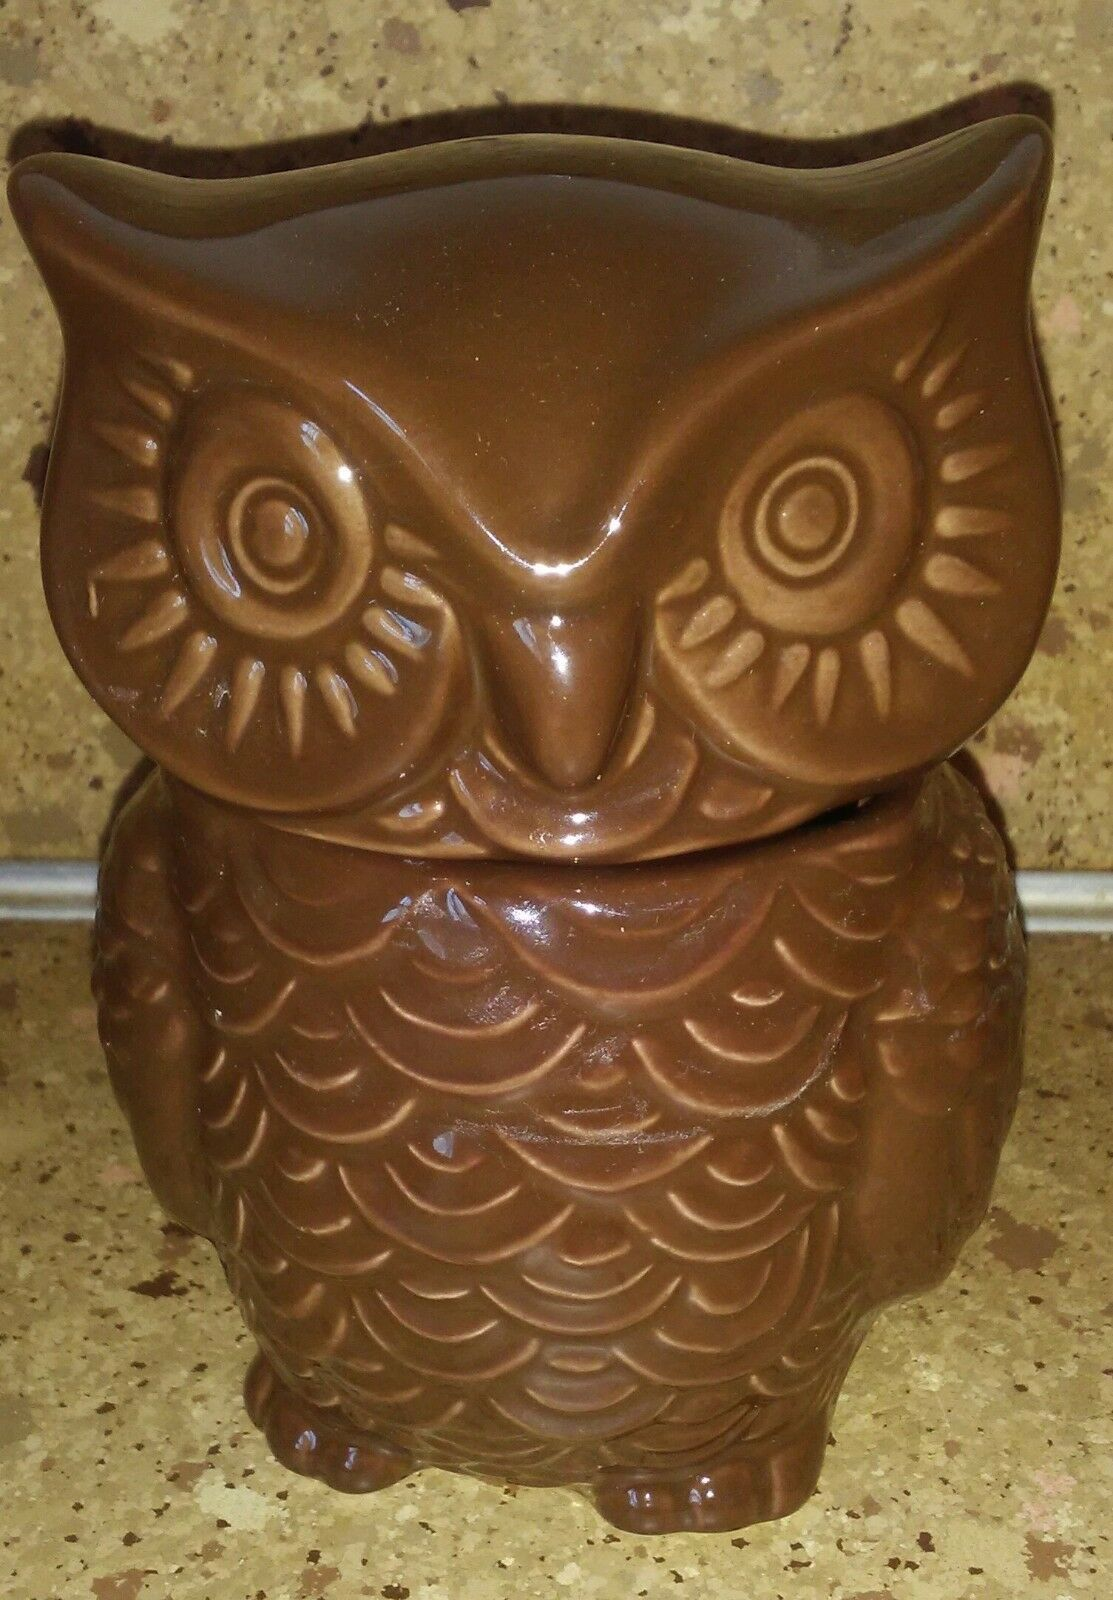 "Brown Owl Sugar Bowl Jar Small 5"" Figurine"